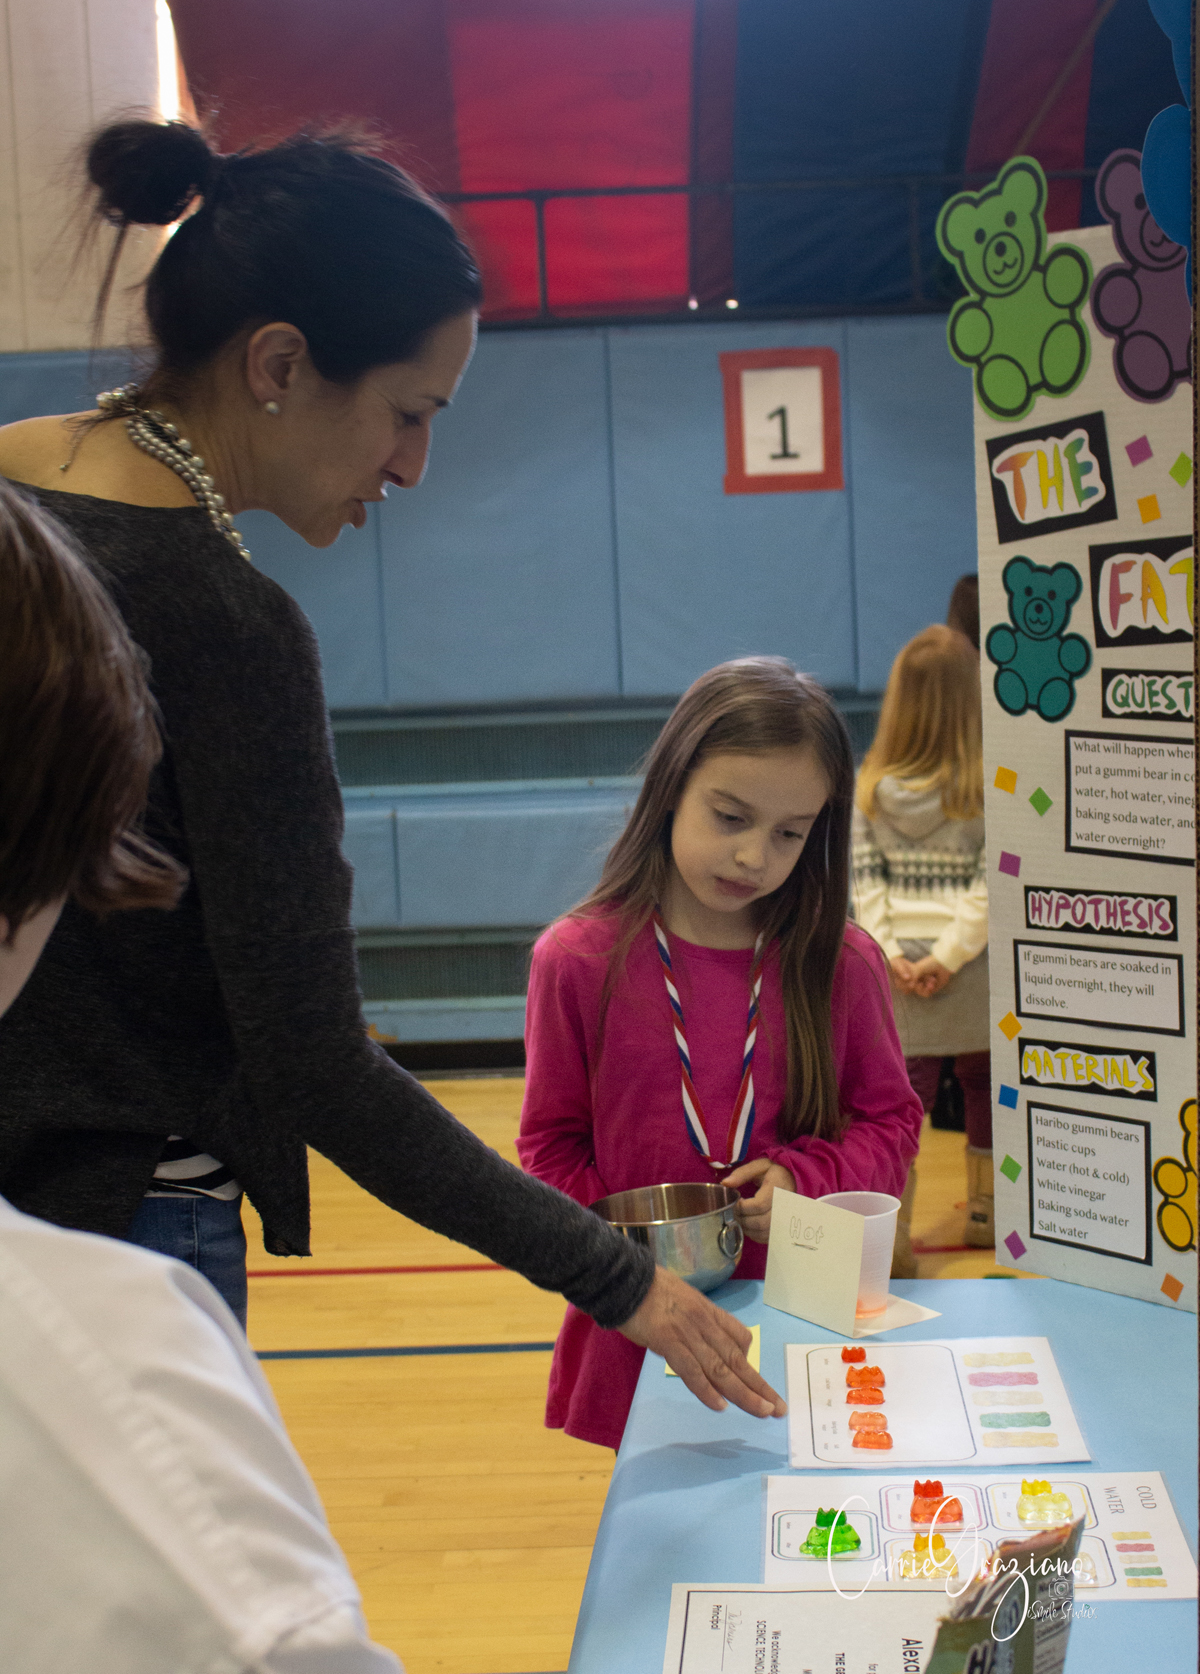 Student presents research project